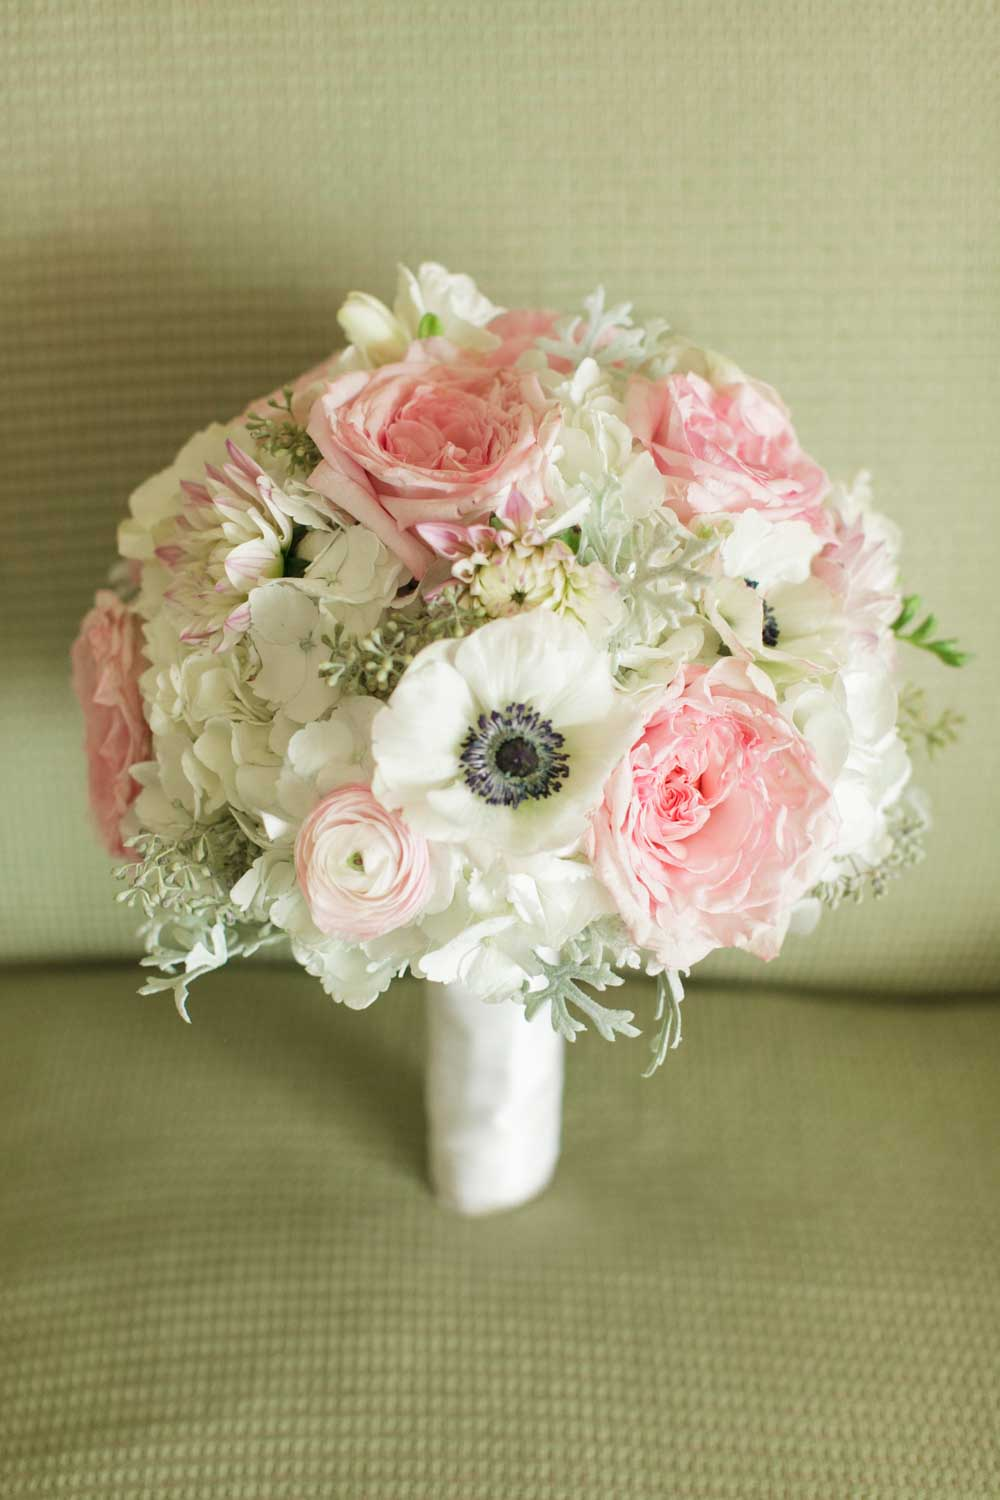 blush and white bridal bouquet on chair